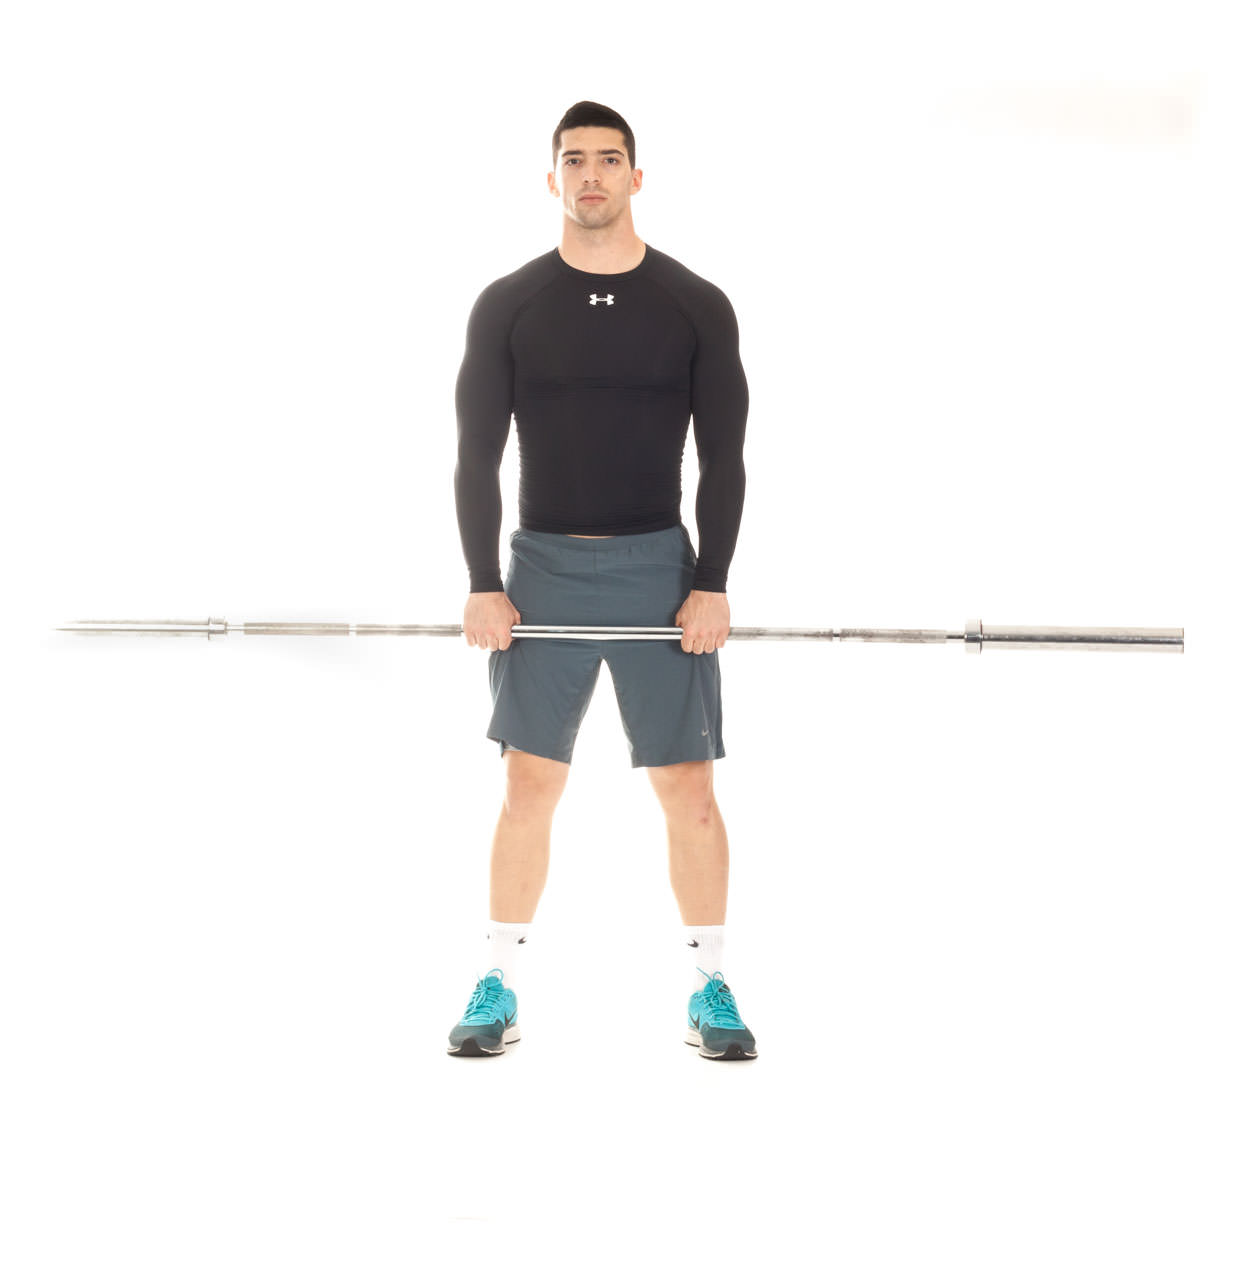 Upright Barbell Row frame #1